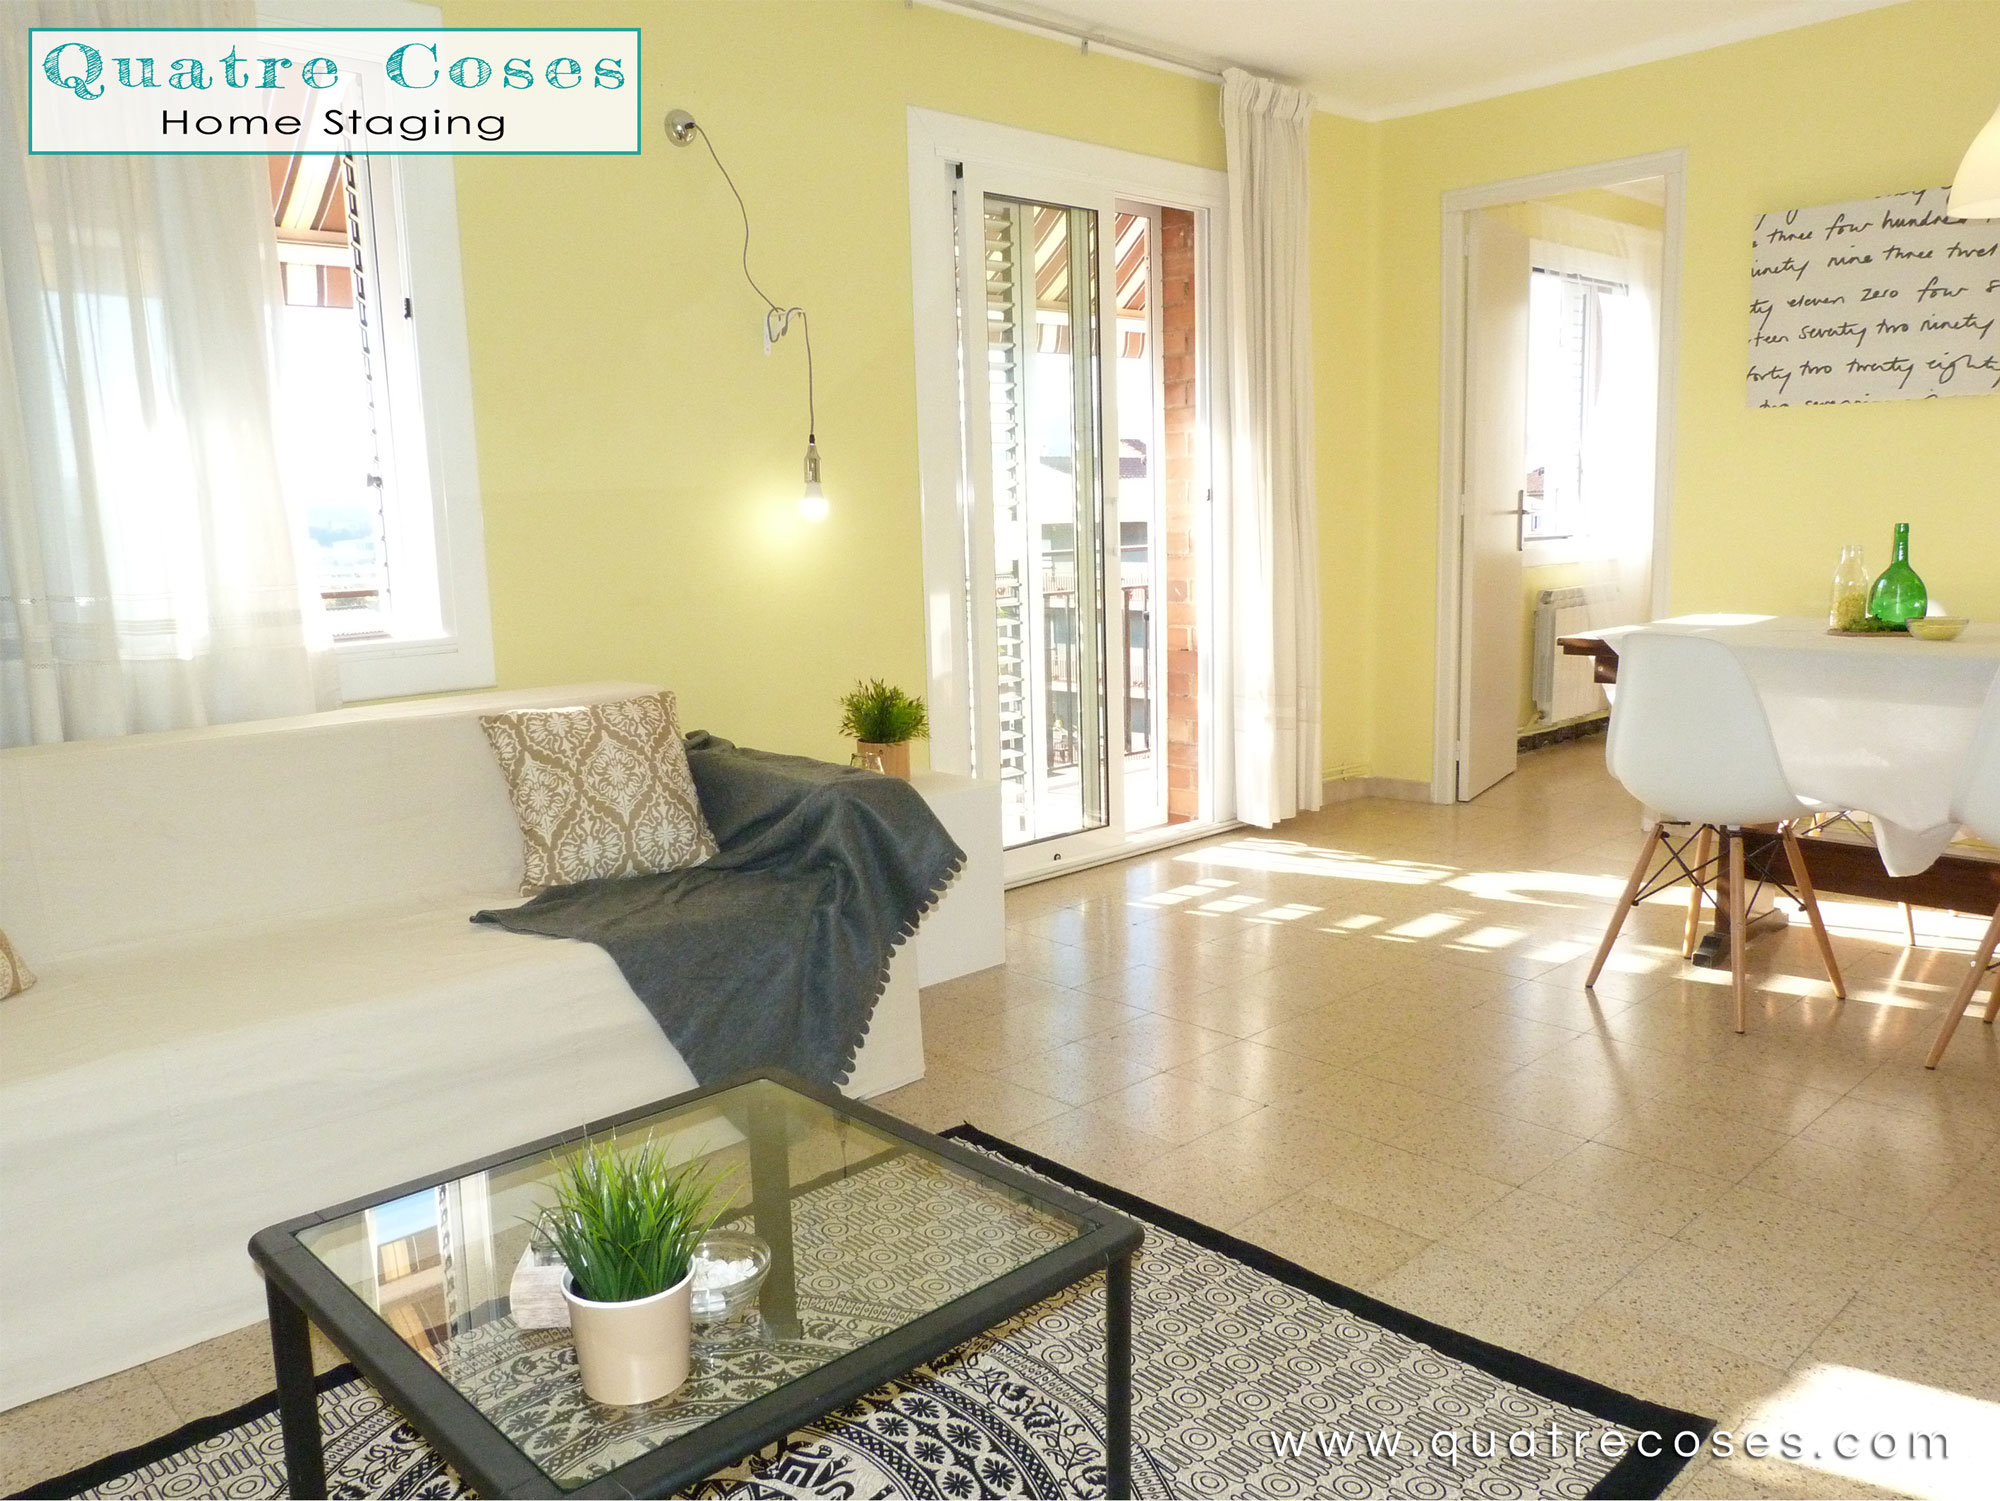 Home Staging Salon Quatre Coses Home Staging En Piso Amueblado En Les